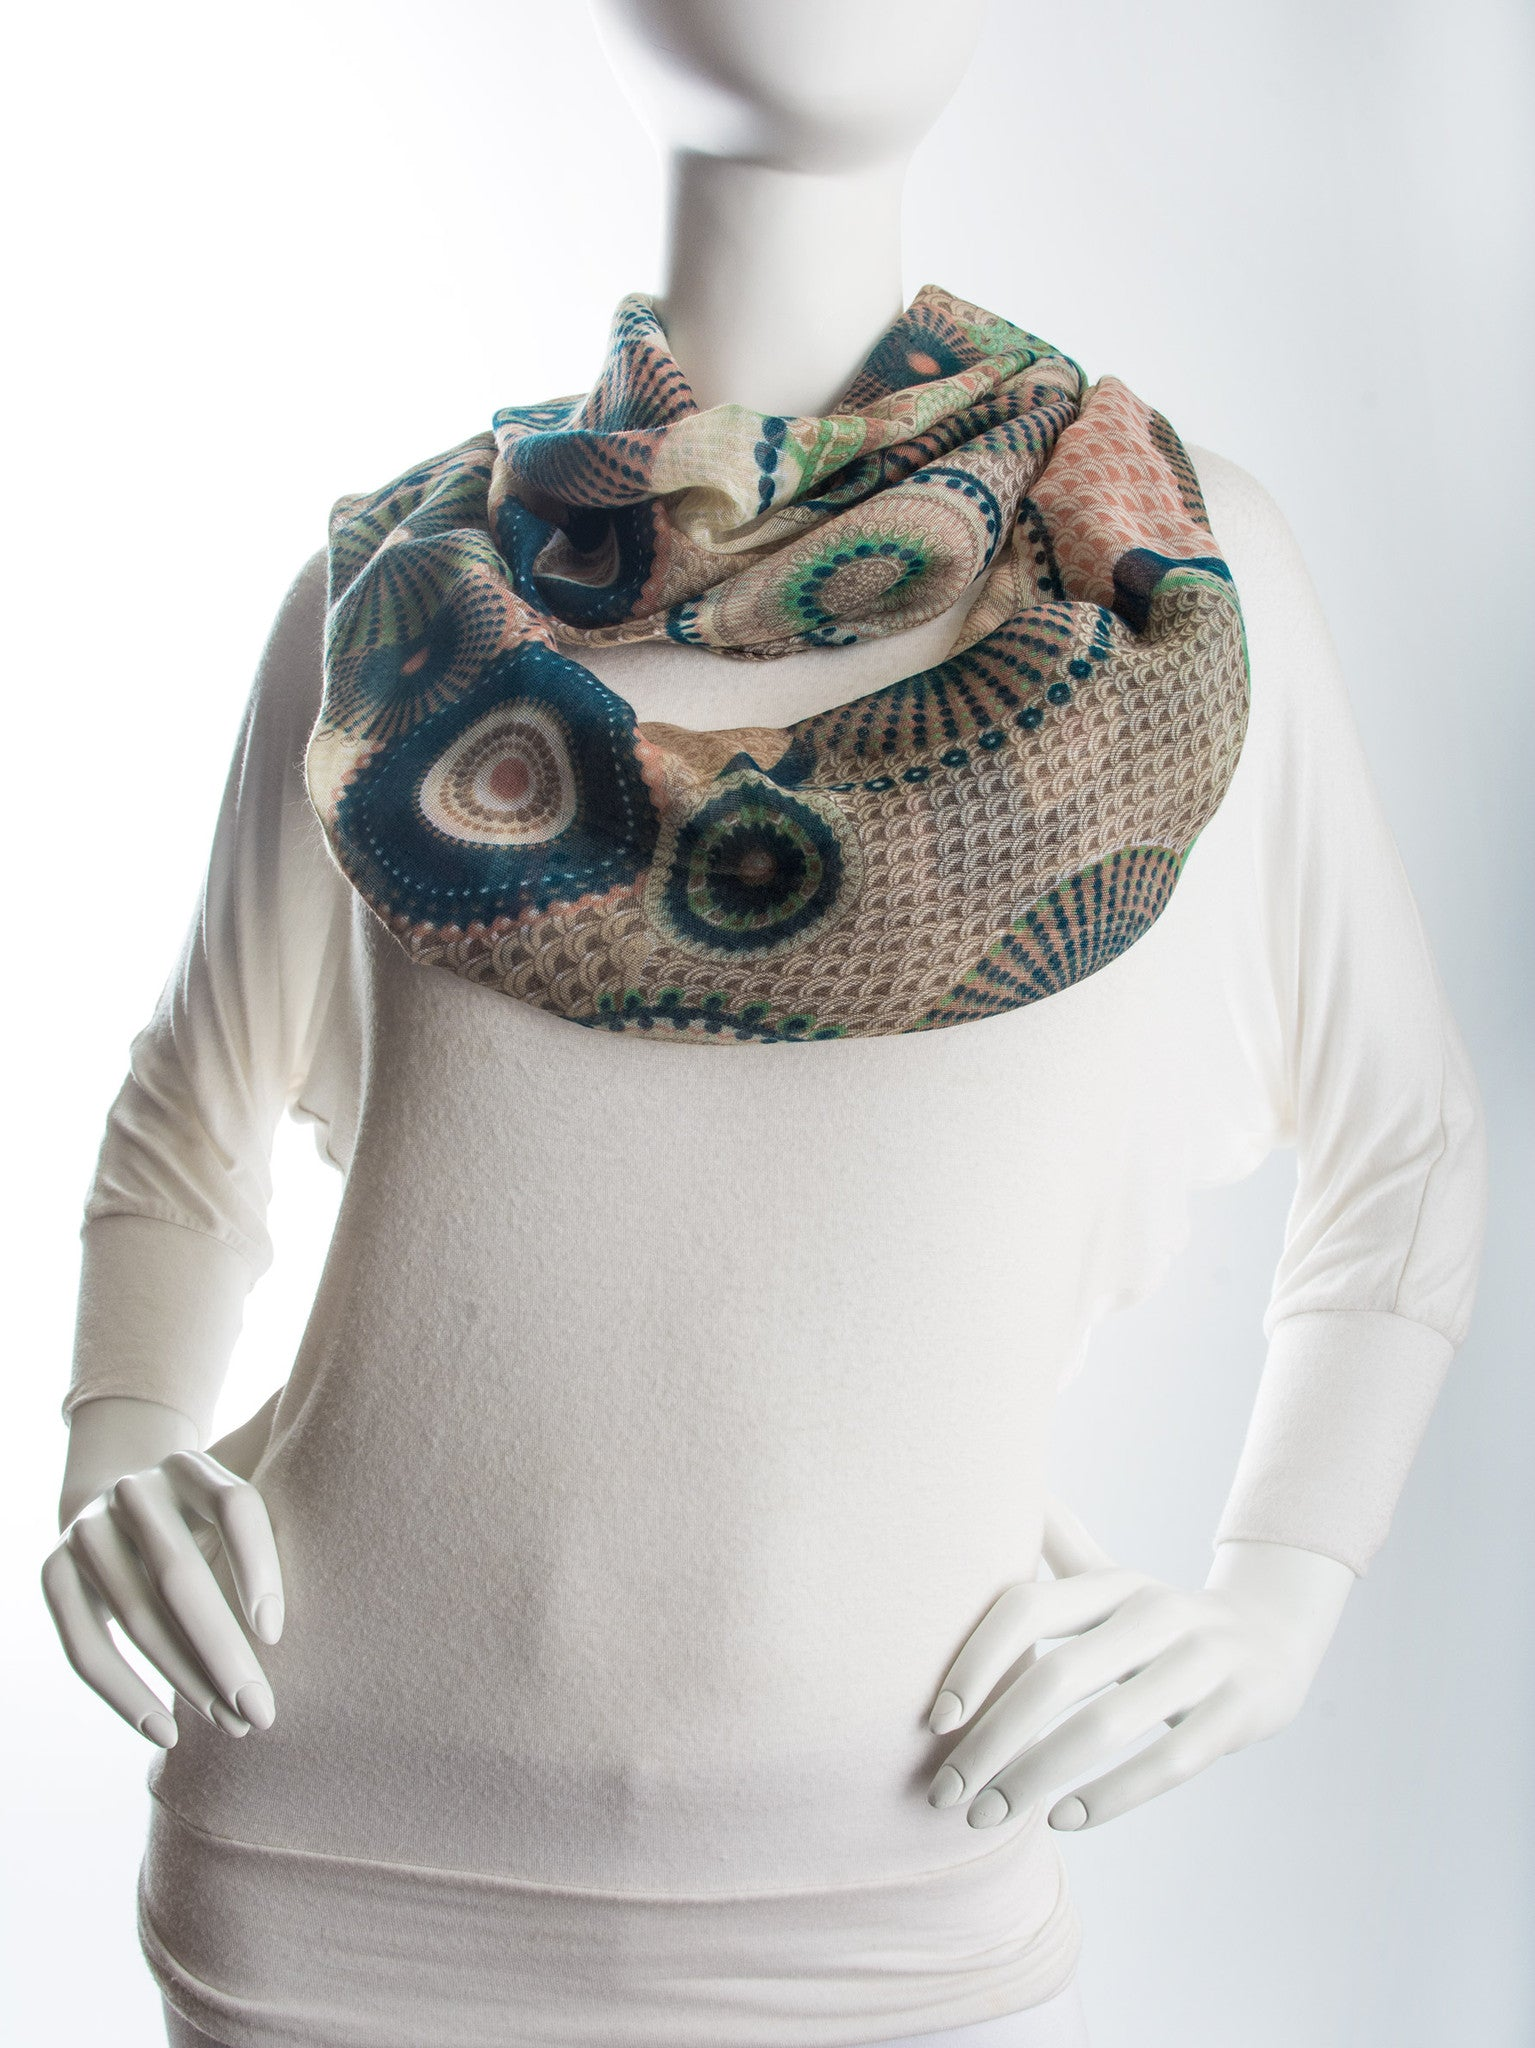 scarf infinity etsy personal scarfstaupecashmereetsy favorite listing com cashmere s shop from my a pin